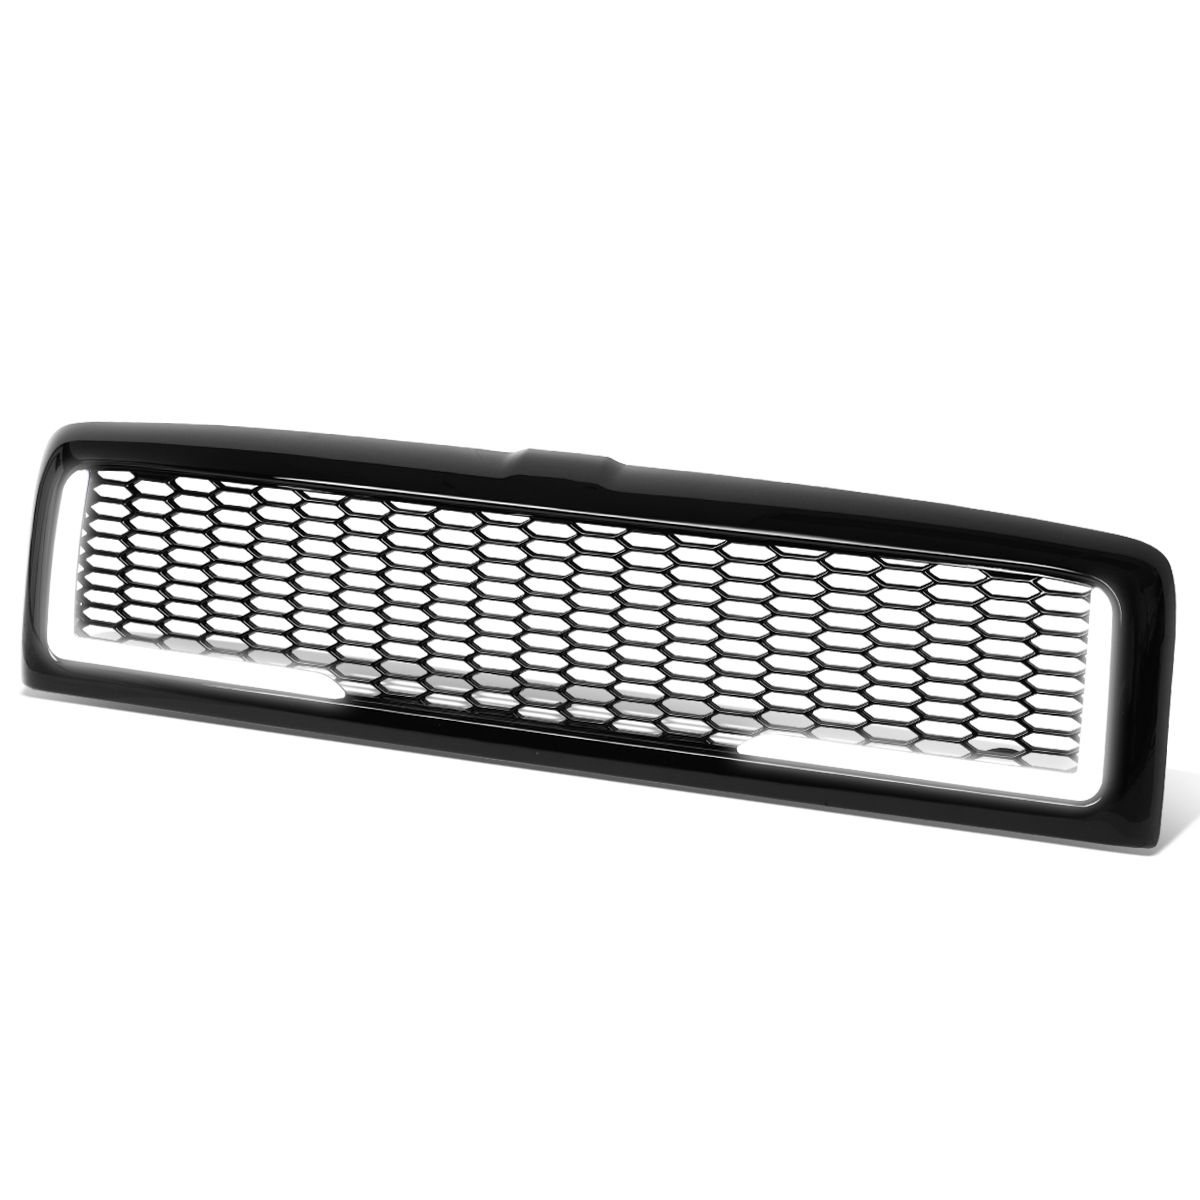 DNA Motoring GRF-LB-005-BK-1 LED DRL Glossy Mesh Front Bumper Grille Grill Replacement